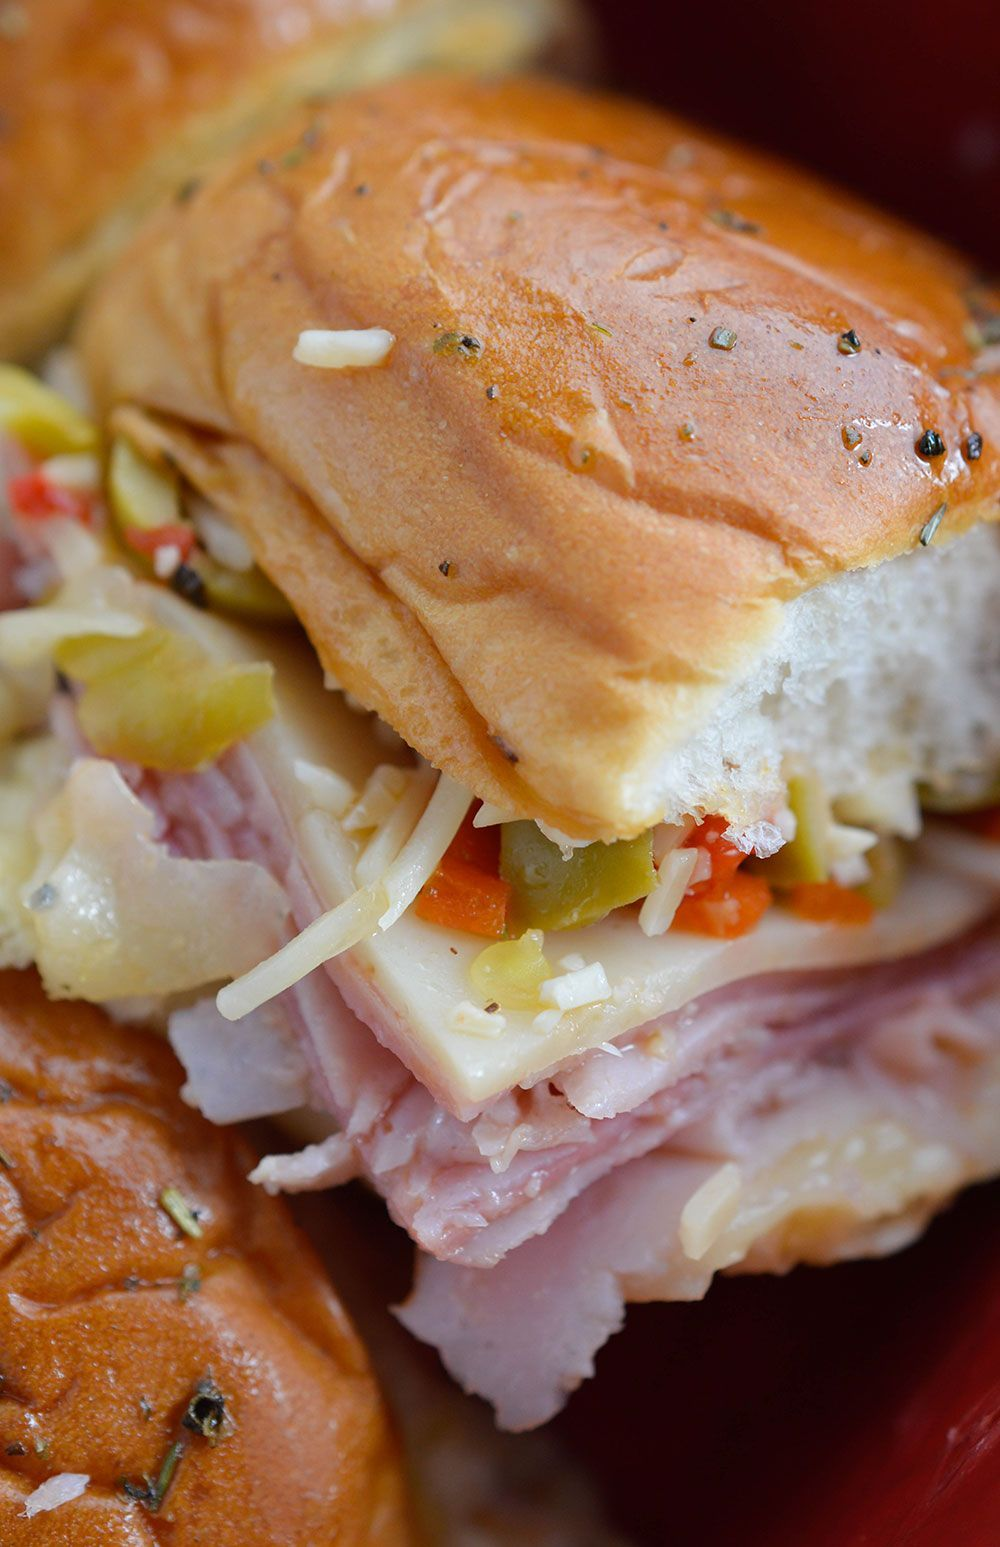 Oven Baked Sandwiches - This Italian Sandwich is loaded with meat, cheese and olive salad. A New Orleans favorite, baked in the oven and perfect for feeding a crowd!